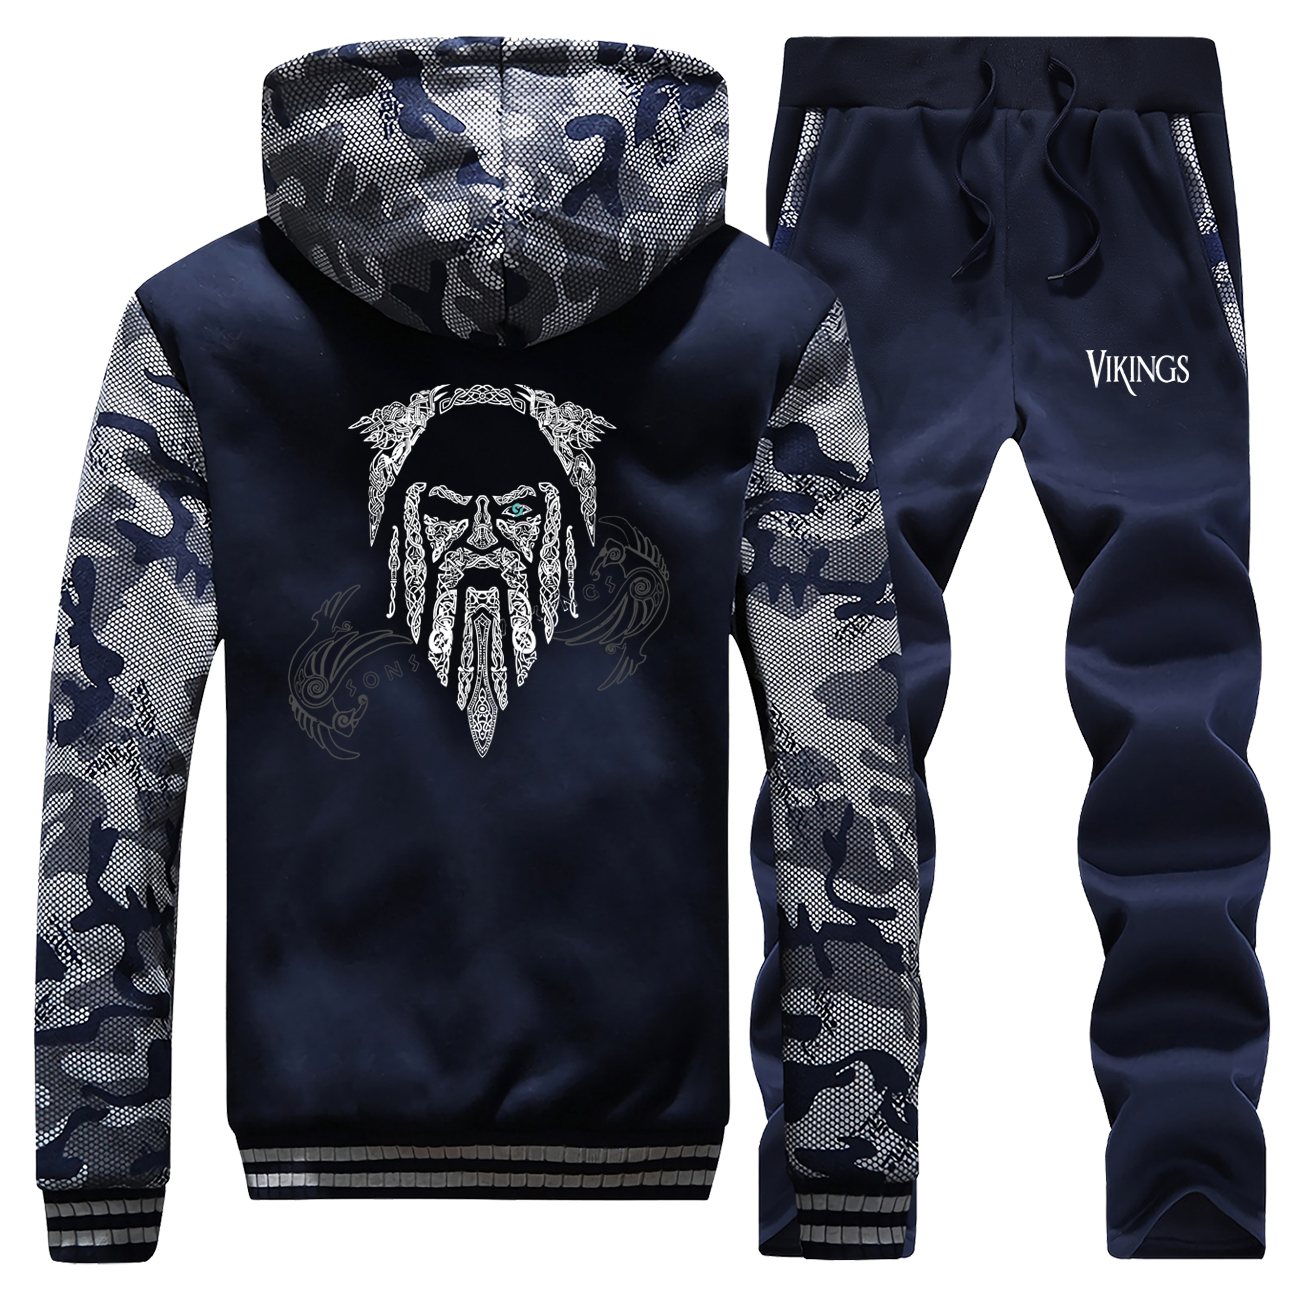 Vikings Hoodies Sons Of   Pant Set Men Tracksuit Coat Son Of Odin Valhalla Athelstan Winter Thick Jacket Camo 2 Piece Sets